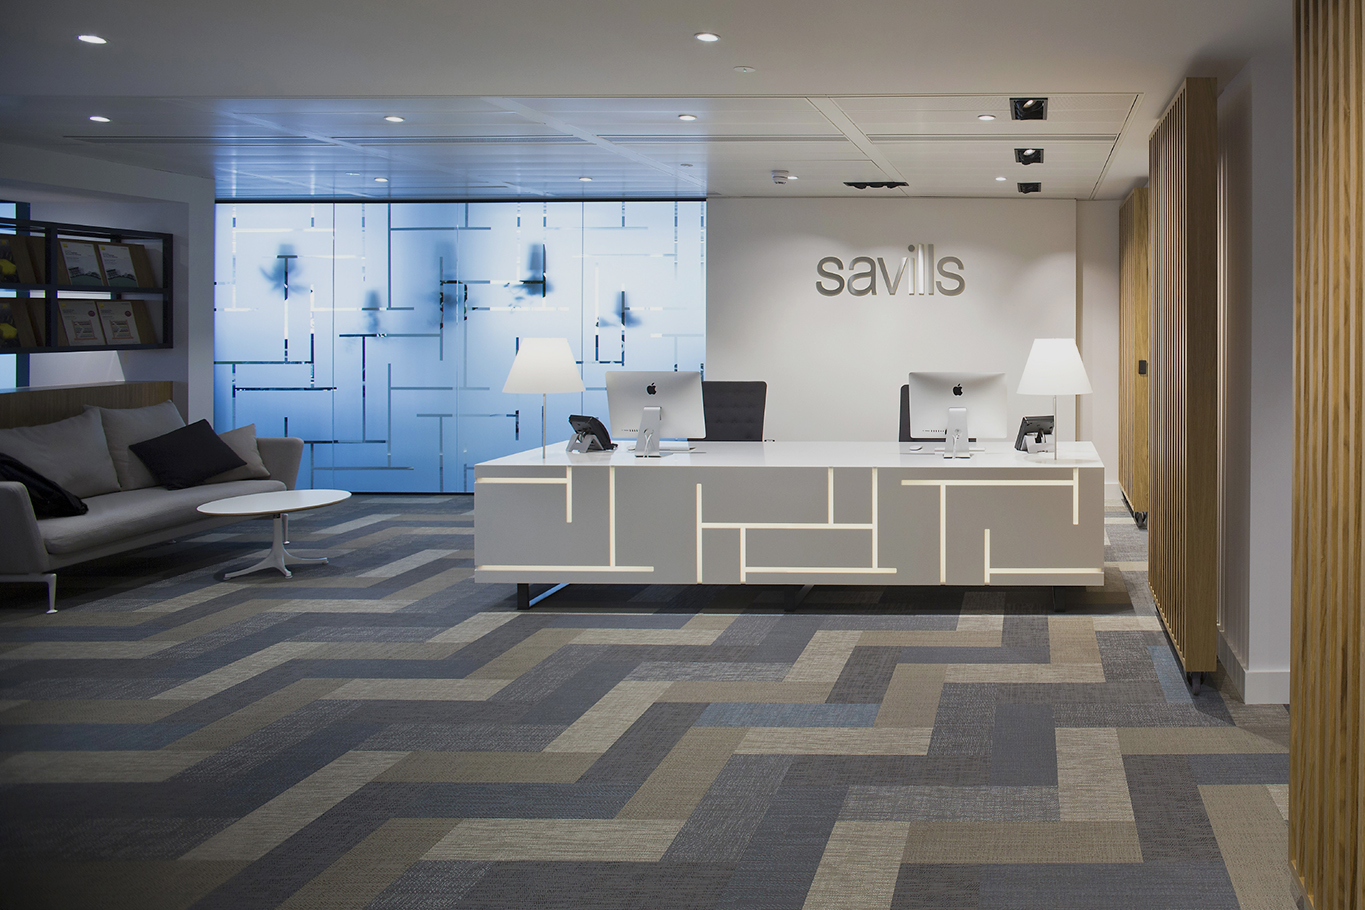 Savills, United Kingdom - Header